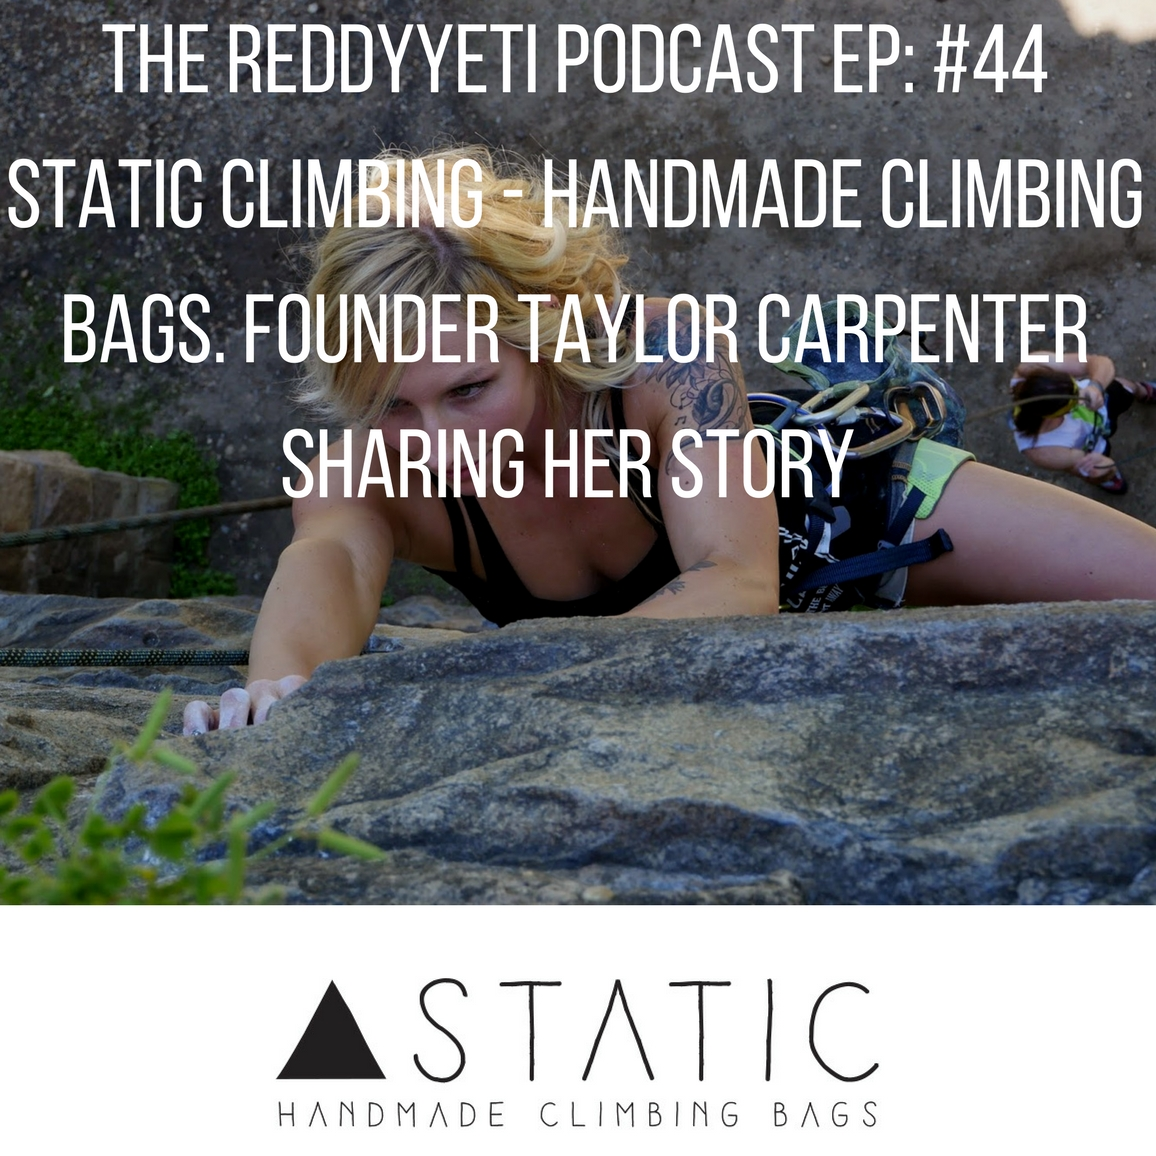 Static Climbing Podcast image1.jpg